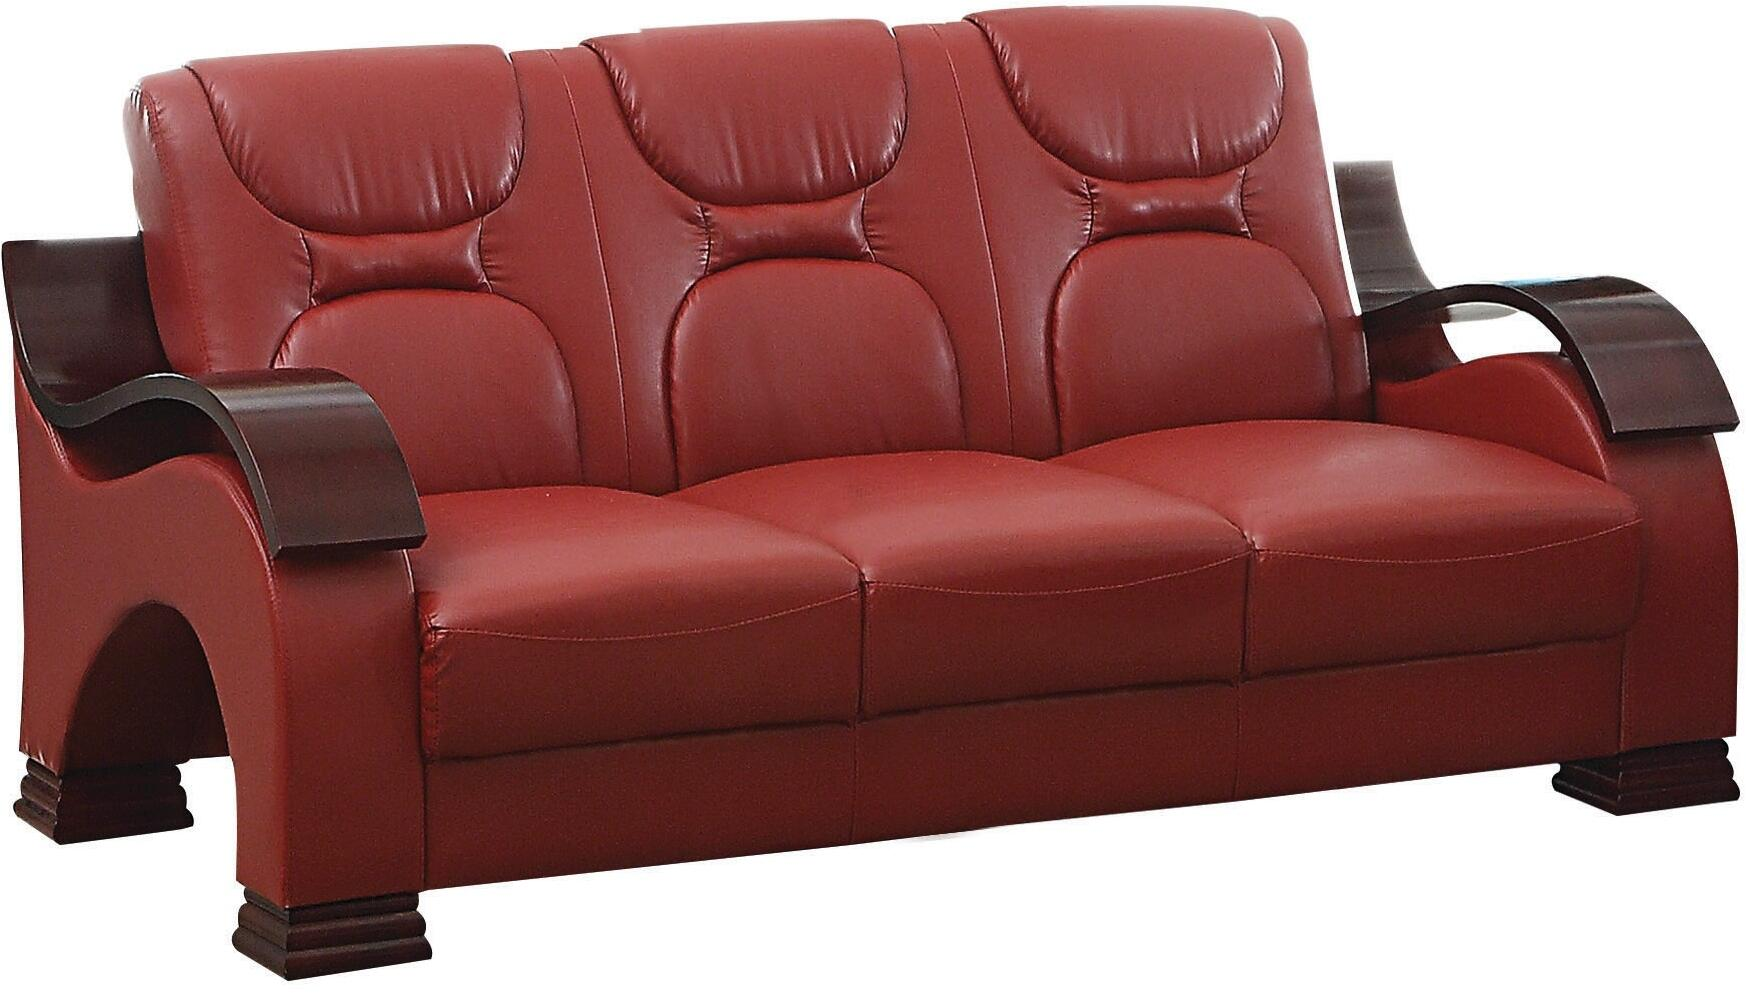 Glory furniture g489s stationary faux leather sofa for Furniture 5 years no interest